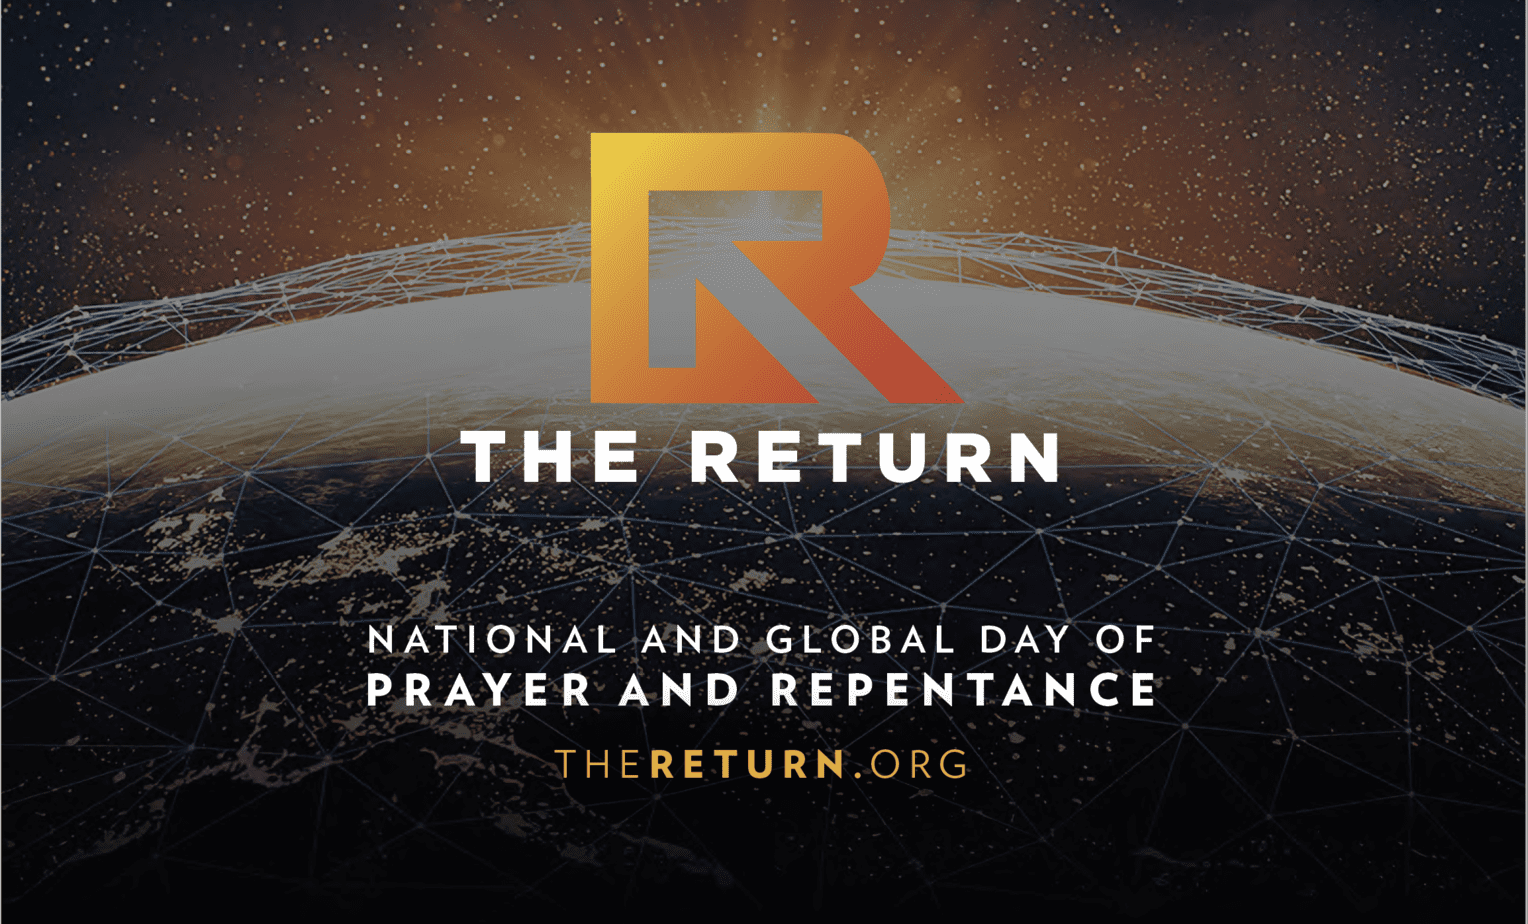 The Return inspires millions of Christians to come back to their first love